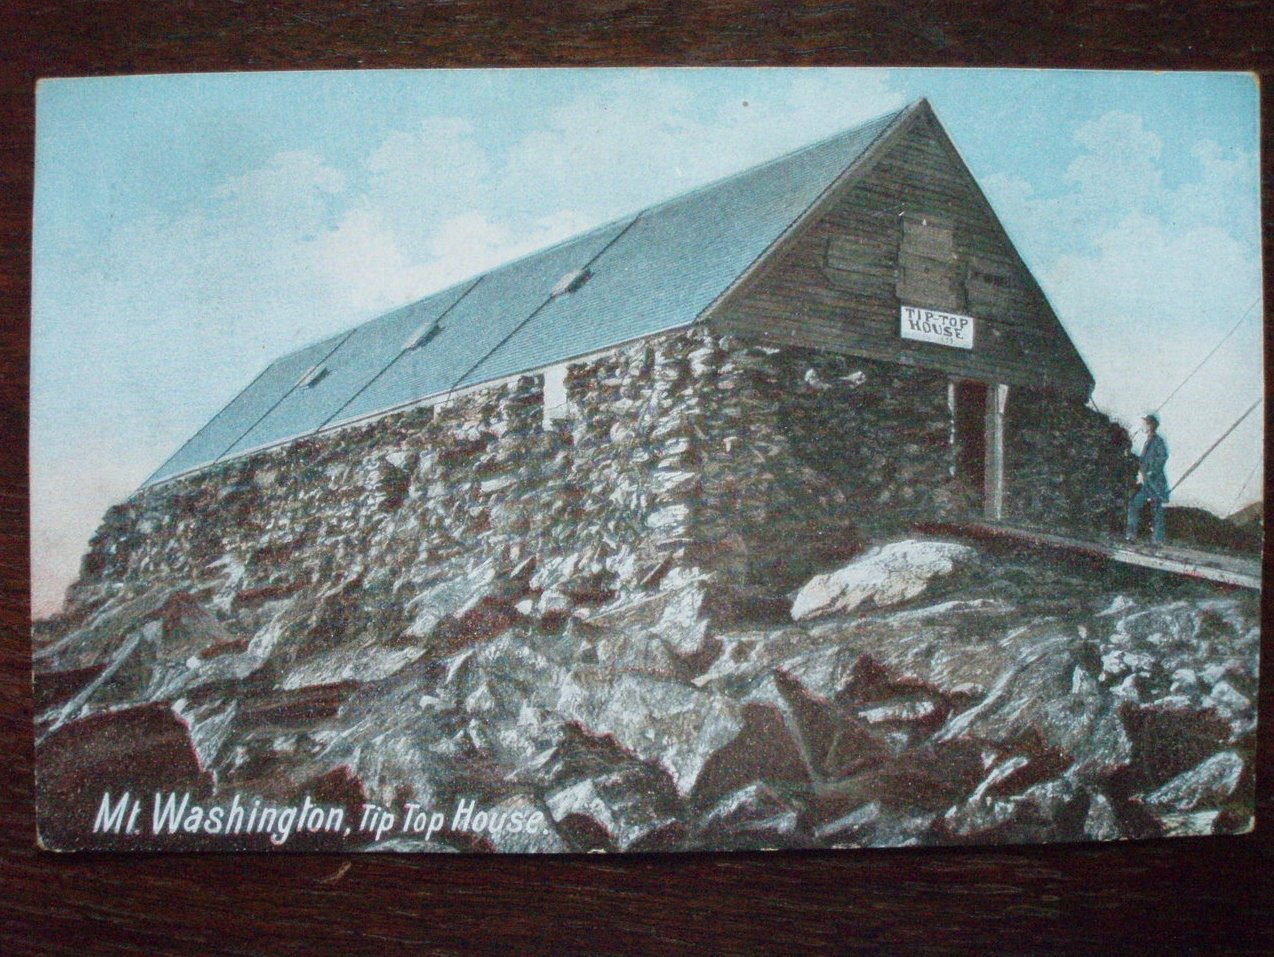 Antique Postcard Mt. Washington Tip Top House 1900